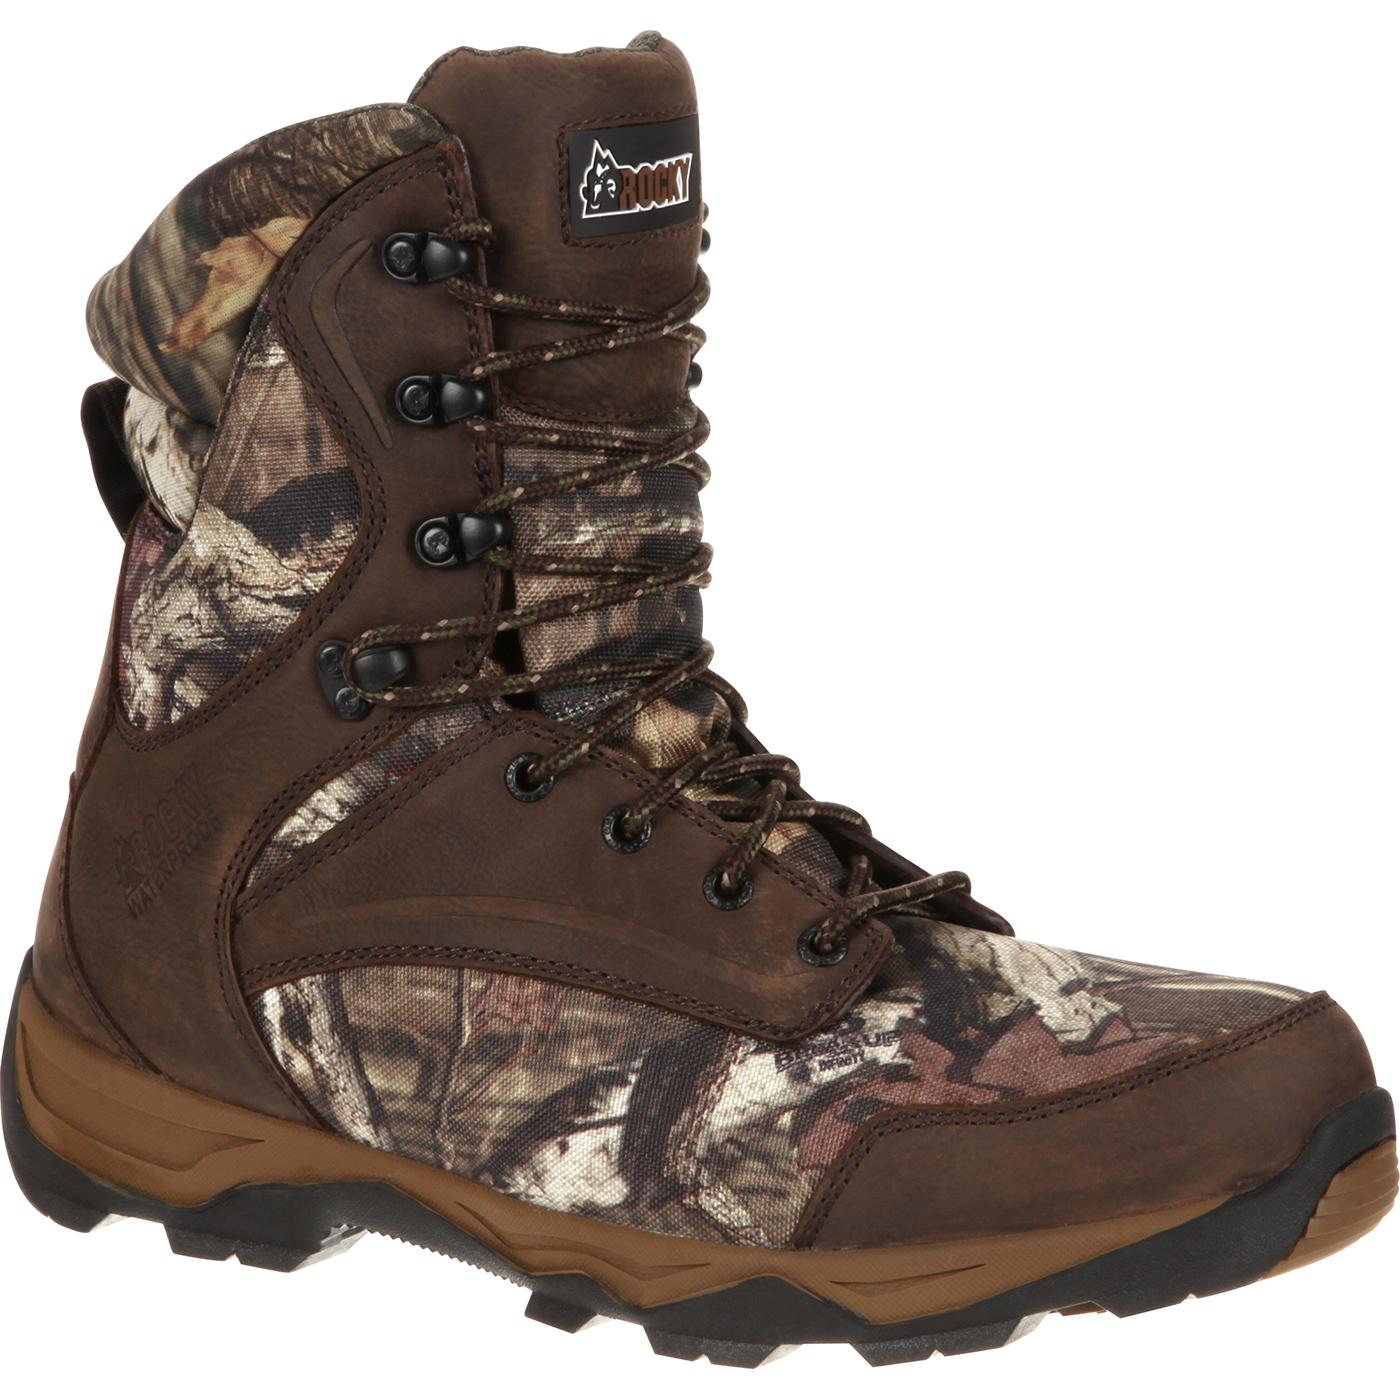 Rocky Retraction Waterproof Insulated Outdoor Boot, RKS0203